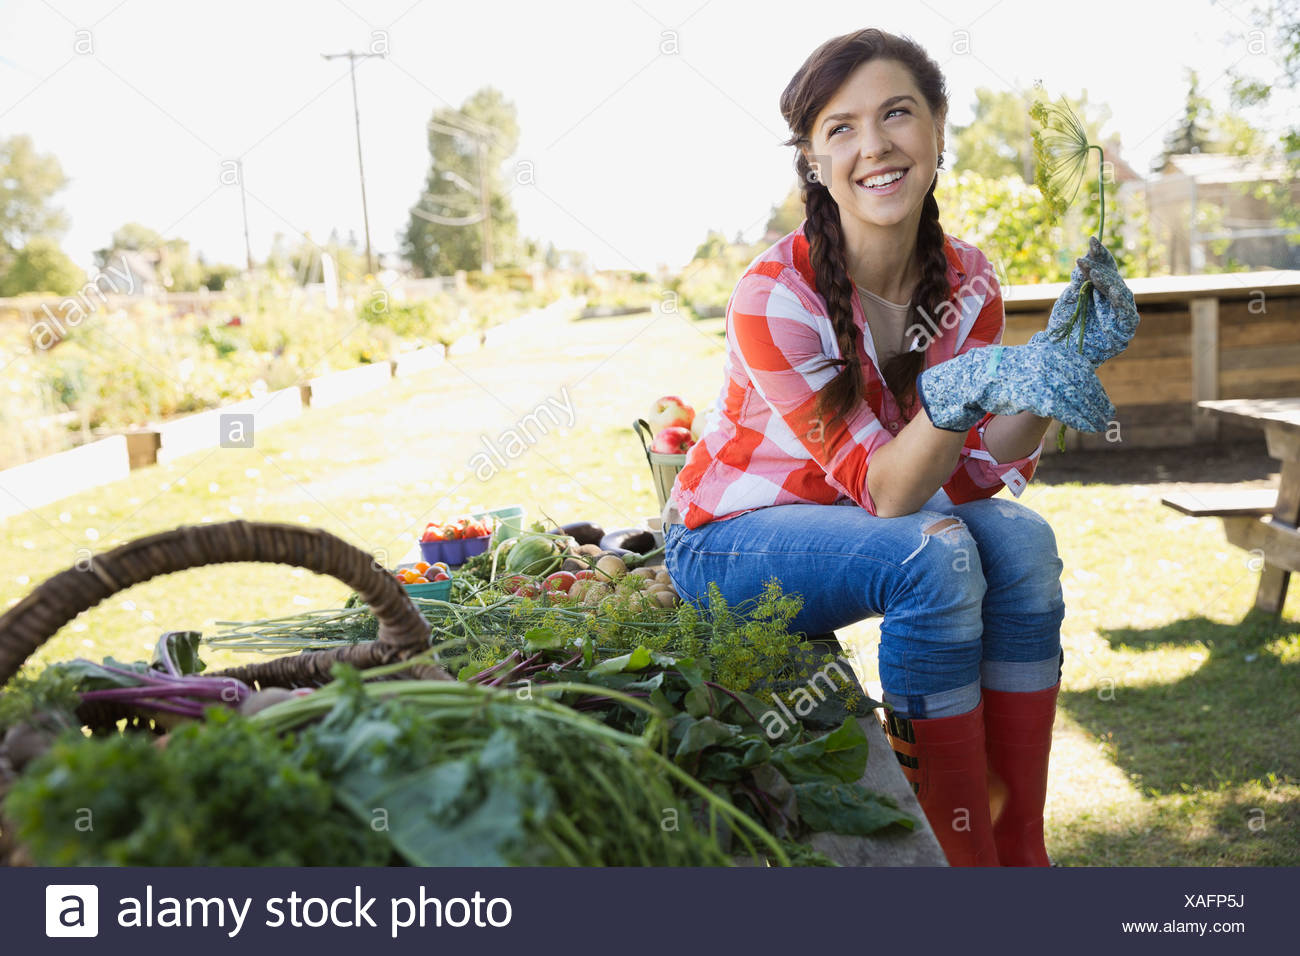 Happy woman sitting in community garden - Stock Image